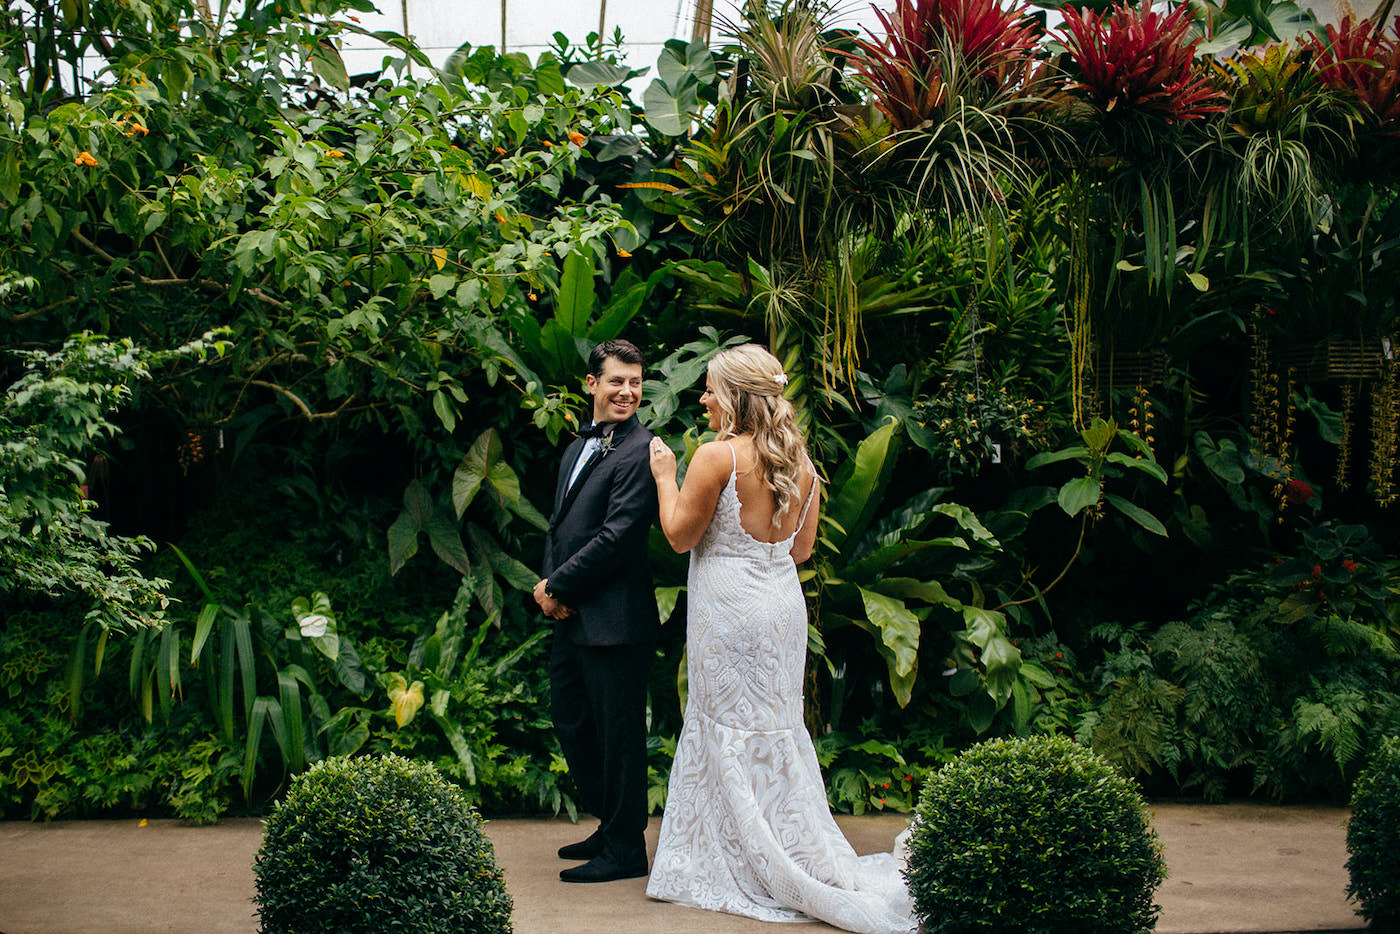 Florida Bride and Groom First Look, Bride Wearing Romantic Hayley Paige Wedding Dress, Groom in Classic black Tux   Marie Selby Botanical Gardens